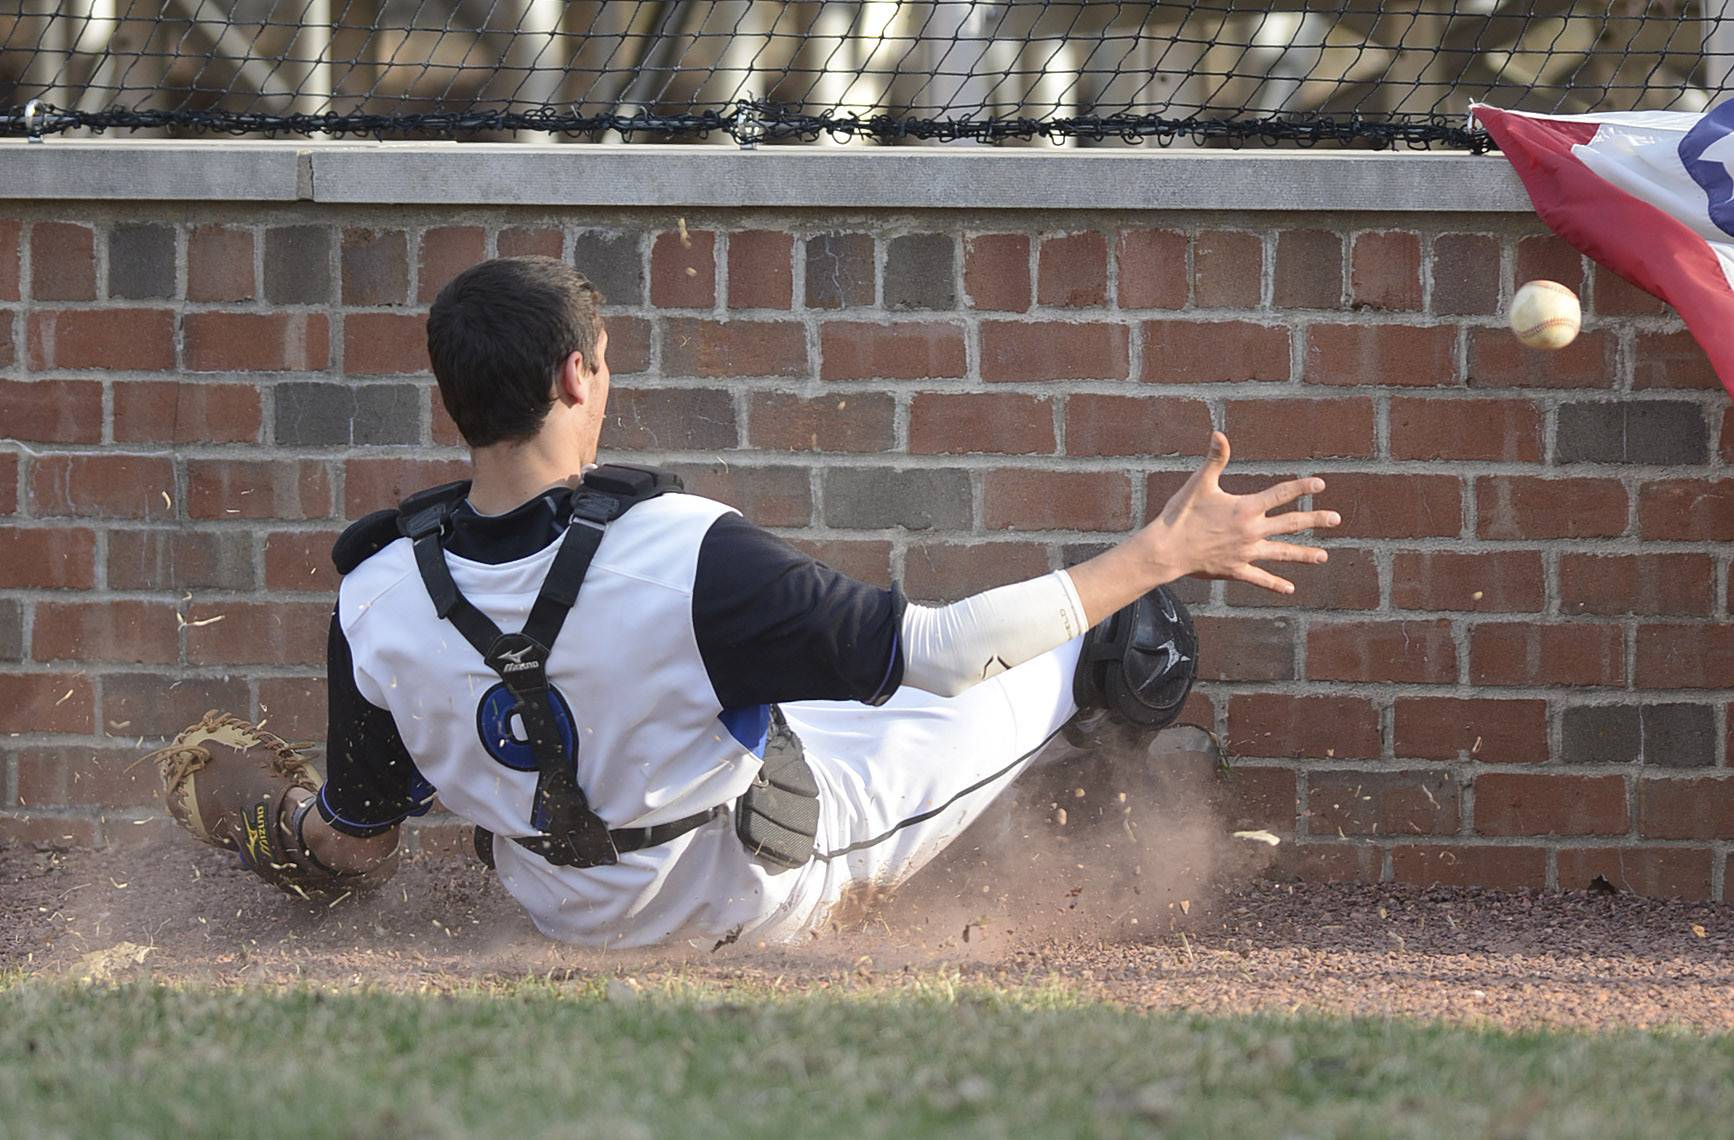 St. Charles North's Kyle Khoury slides into the wall attempting to grab a ball in the fourth inning on Friday, April 11.